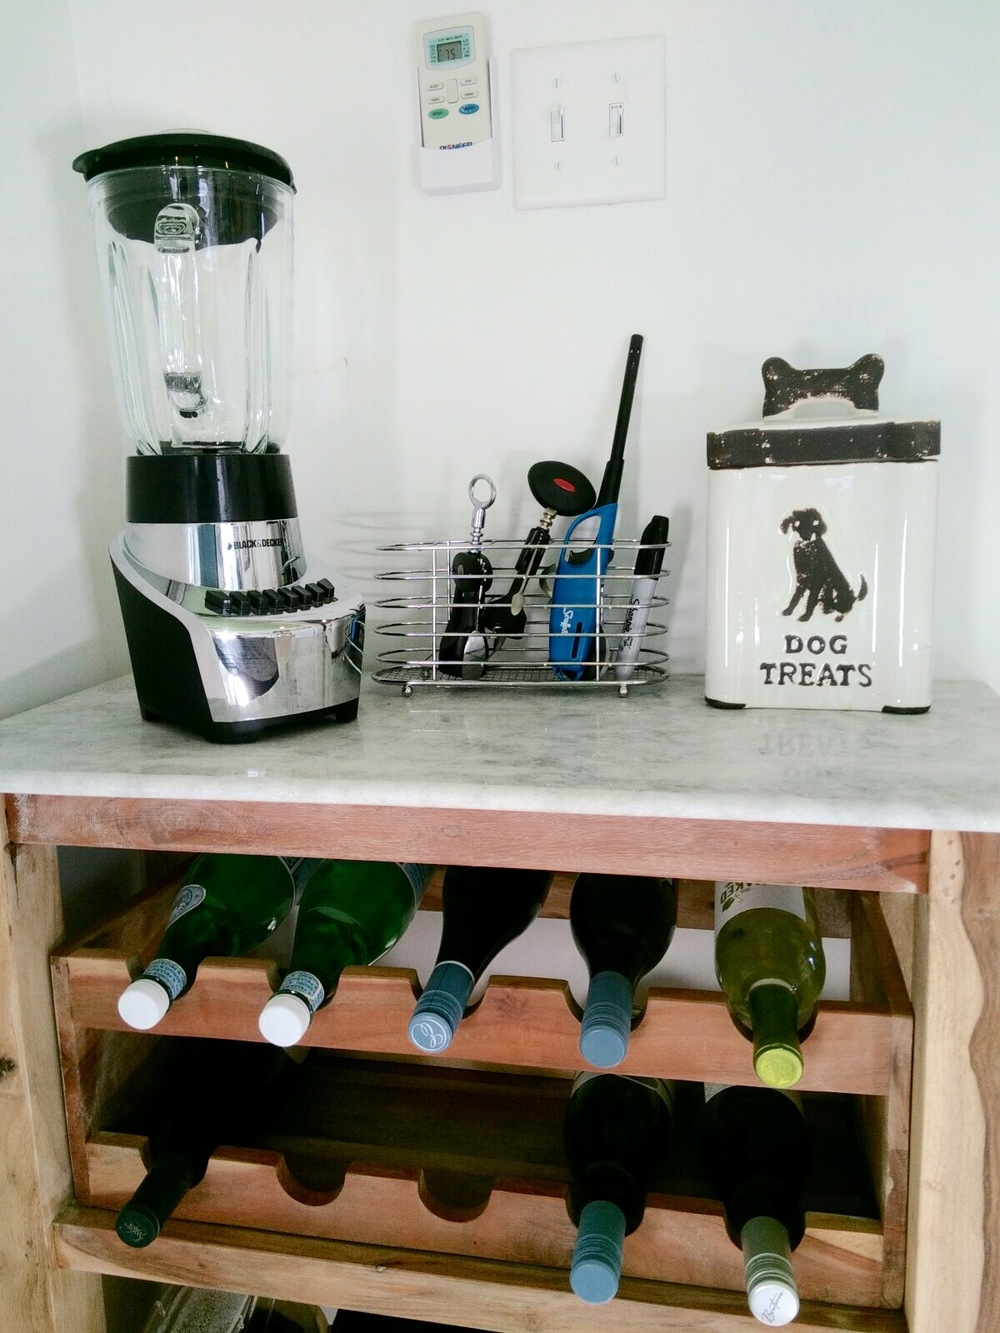 Kitchen Wine Rack - Dog treat container found at a shop, Modern Vintage, on the island.